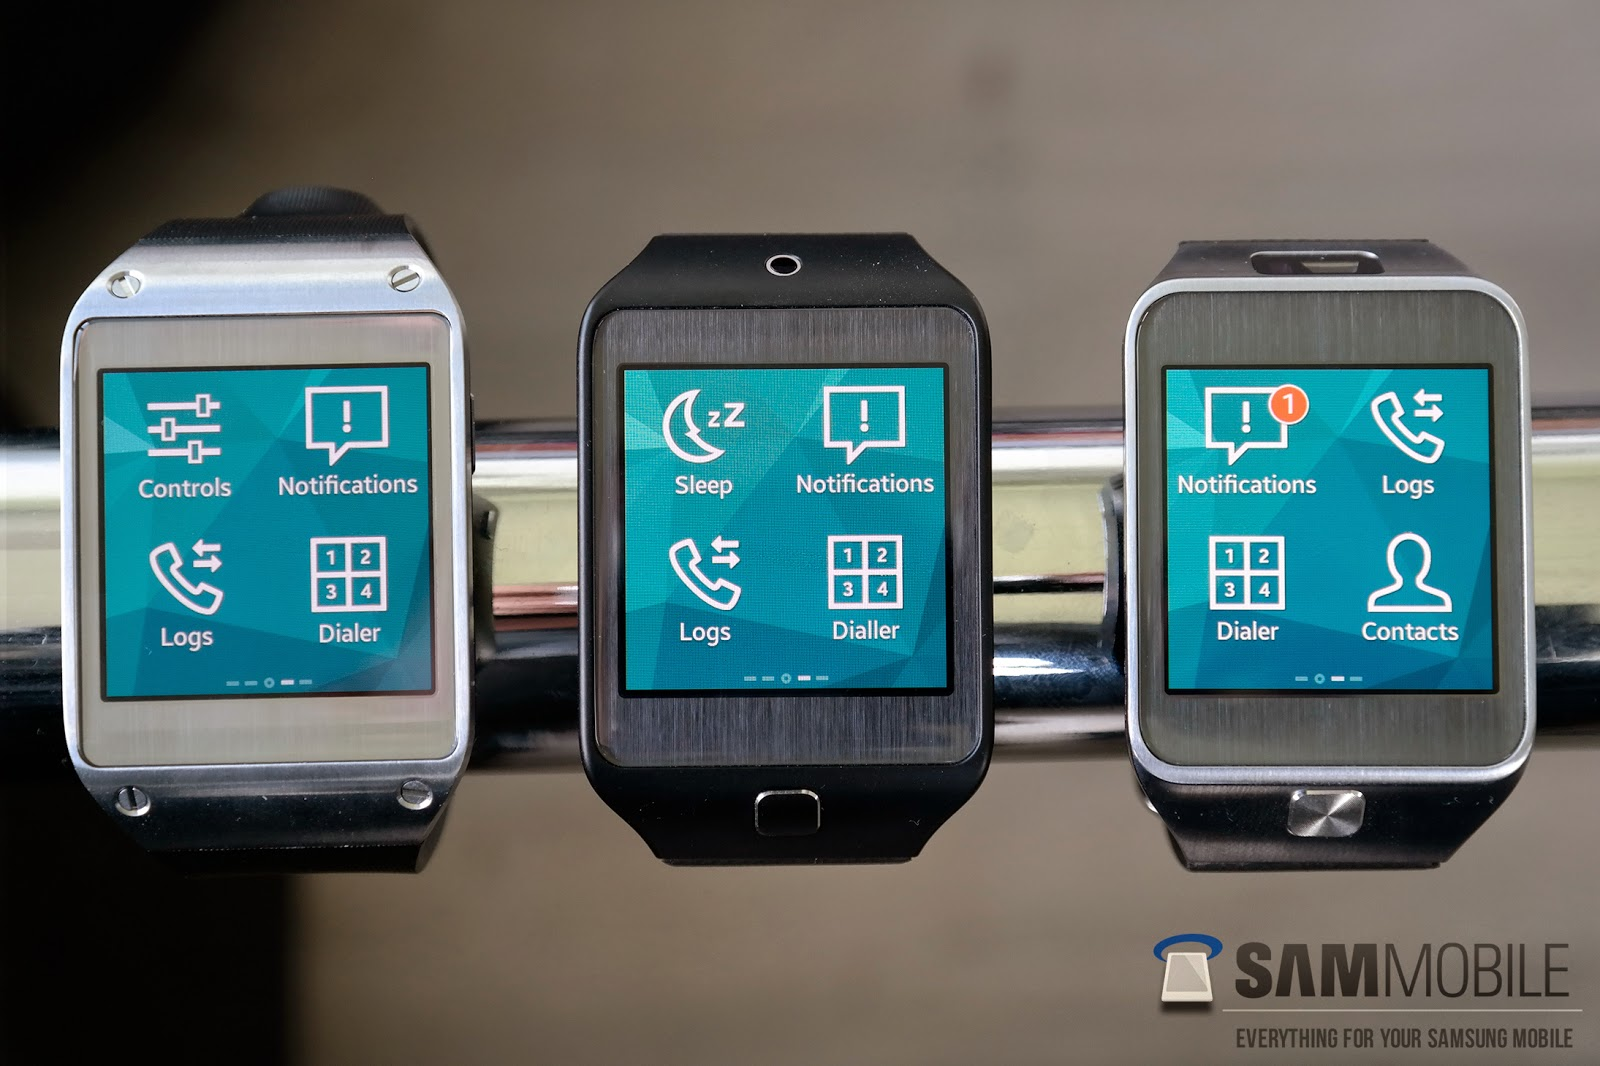 Galaxy Gear - Tizen OS